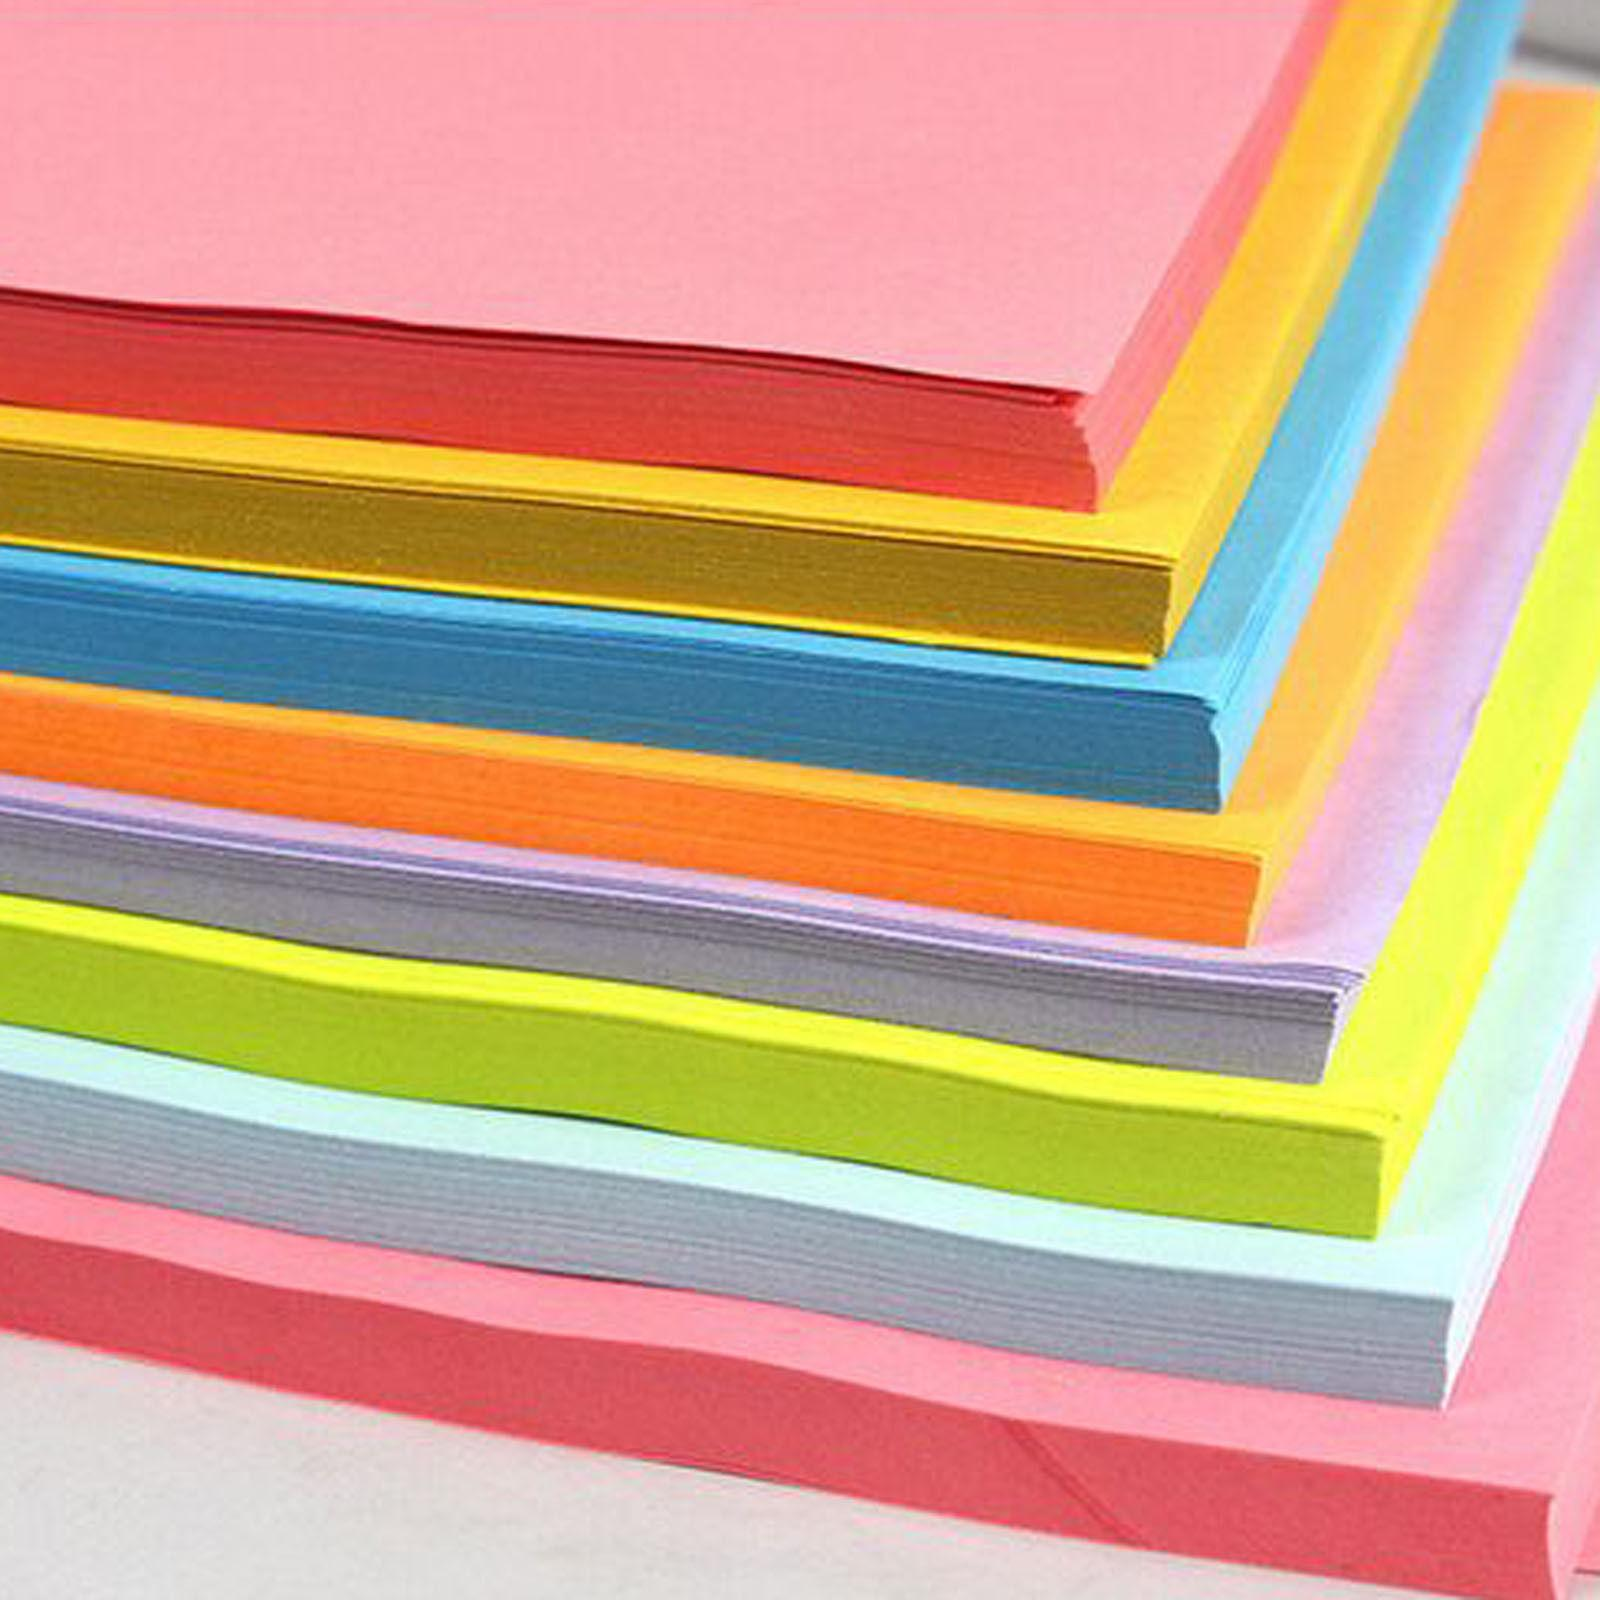 A4 297mm X 210mmcoloured Card Craft Paper 50 Sheets Printer Copier